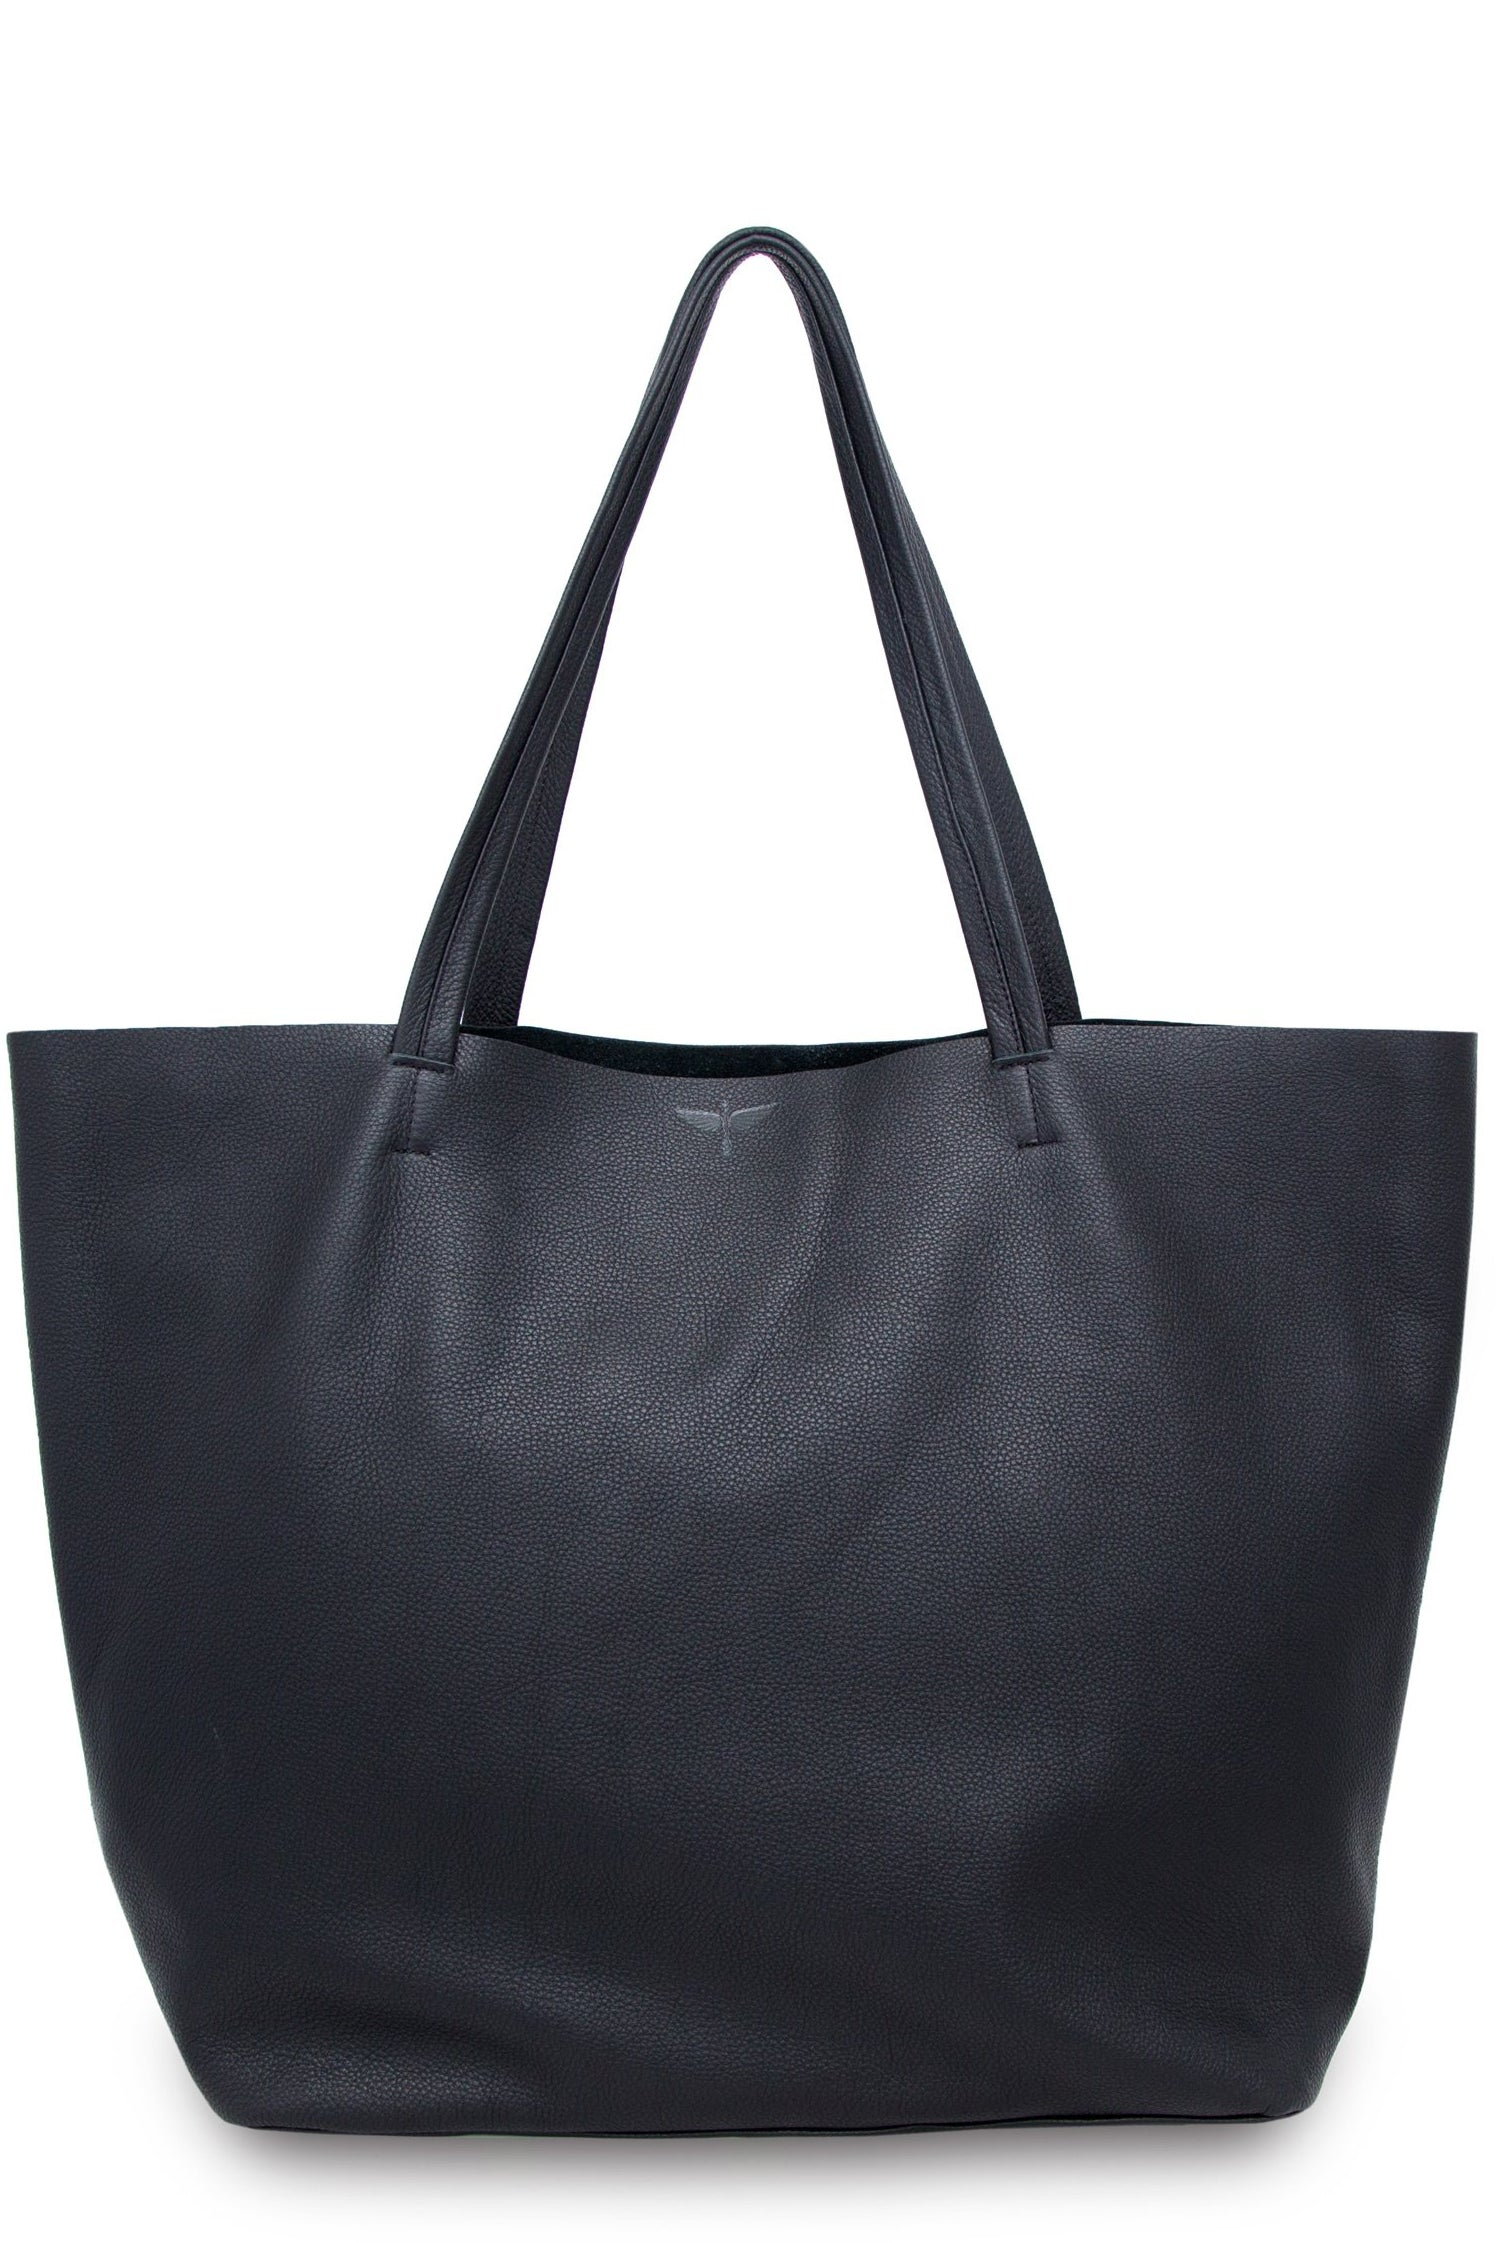 Clhei Sol Tote in Black